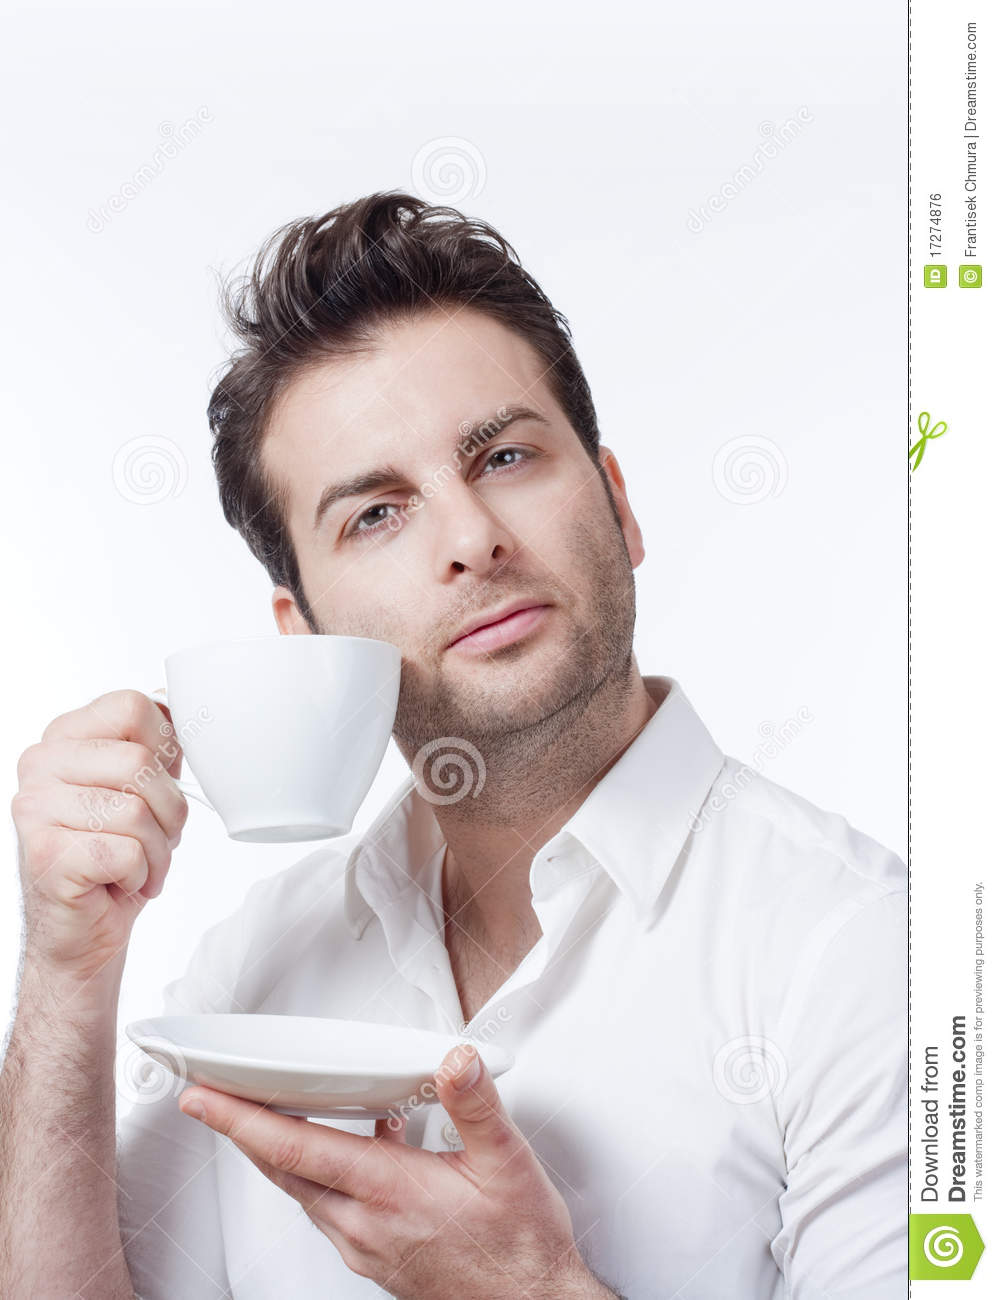 Man Holding Cup Of Coffee Royalty Free Stock Image - Image ...